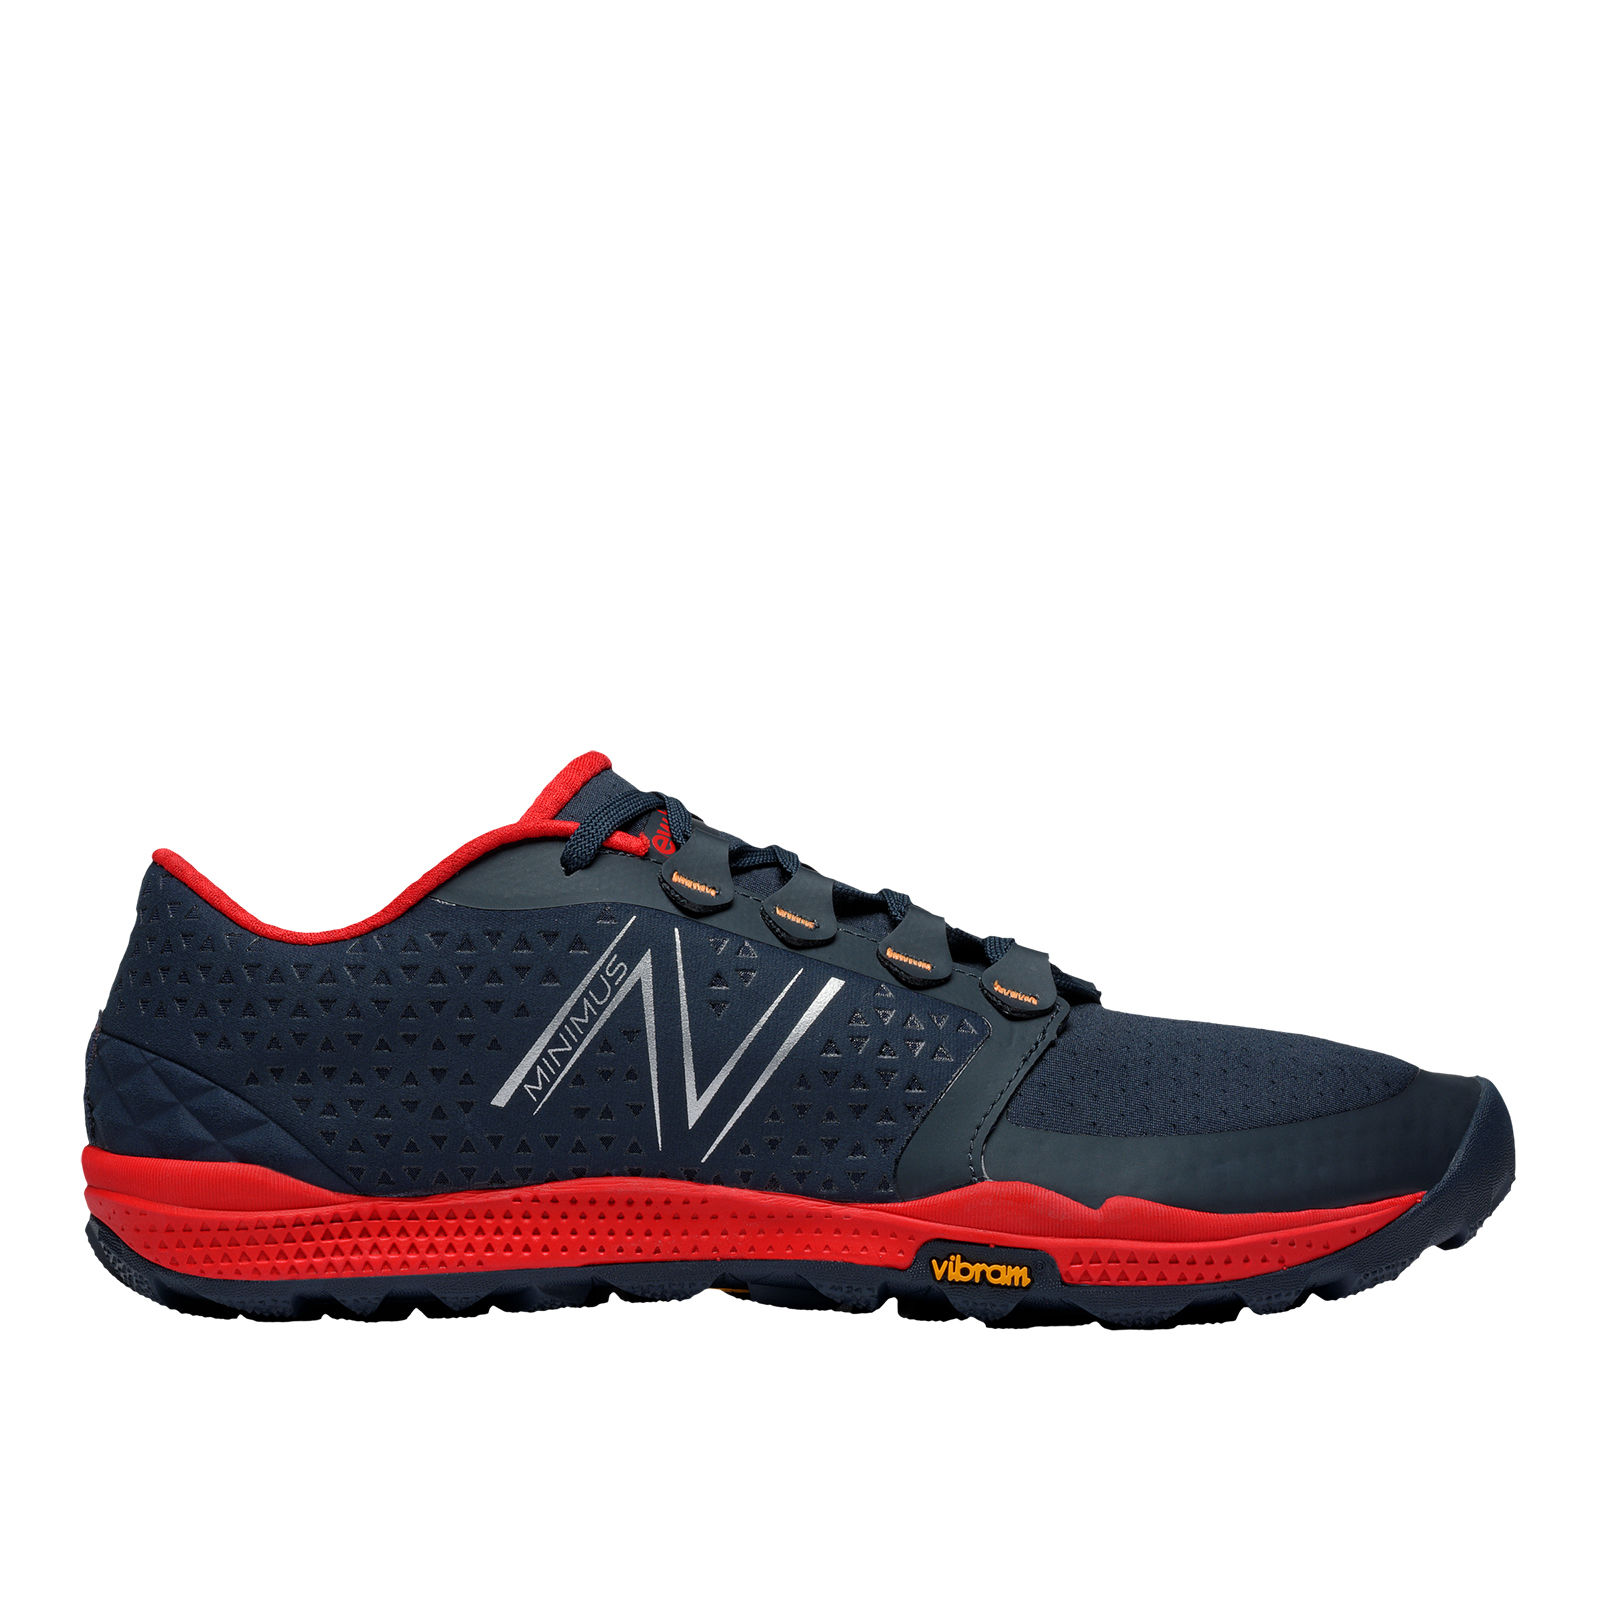 New Balance Minimus 10 V4 in Black Red